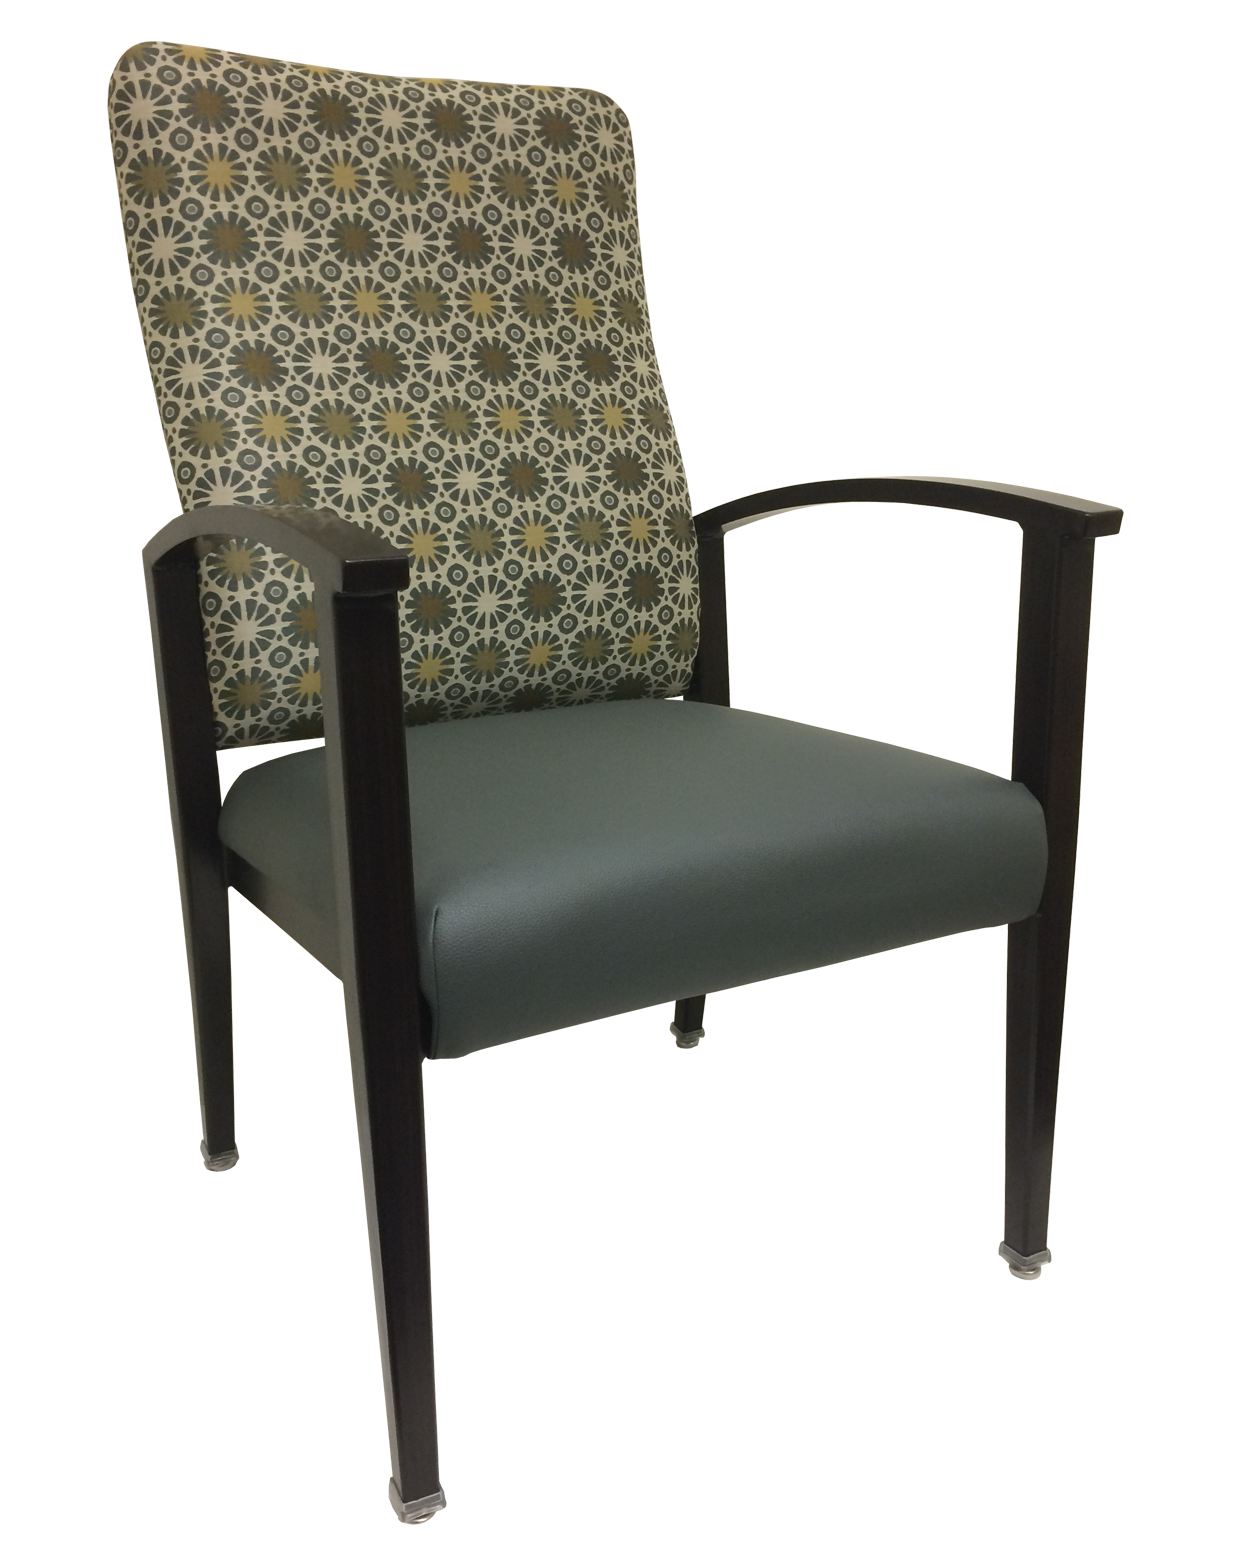 Aluminum Wood-Grain Resident Room Chairs